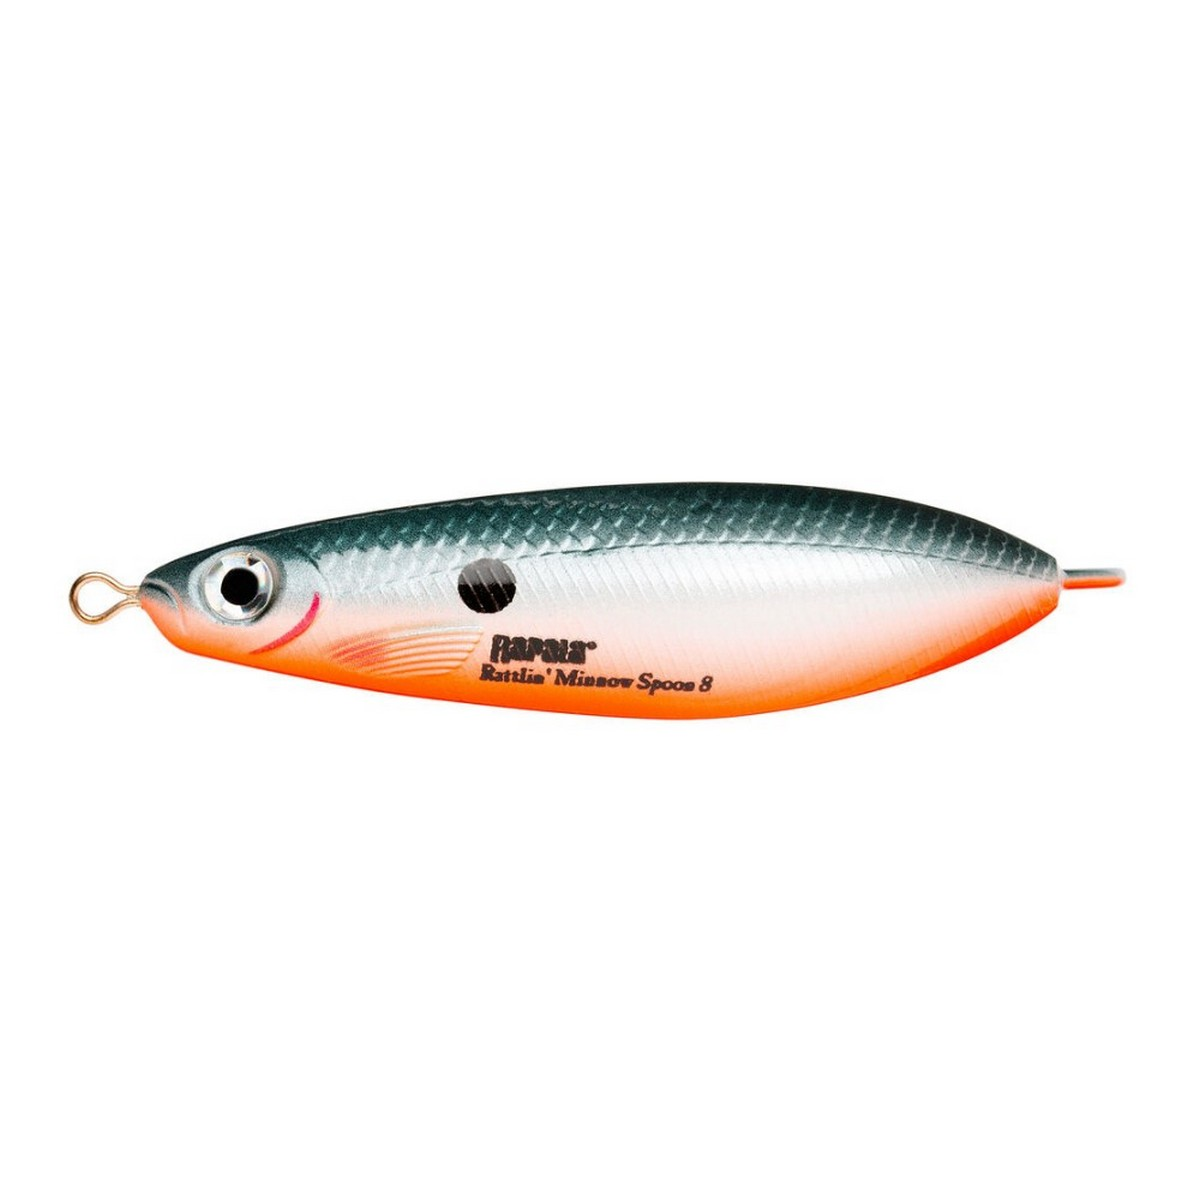 Воблер Rapala Rattlin Minnow Spoon 8см